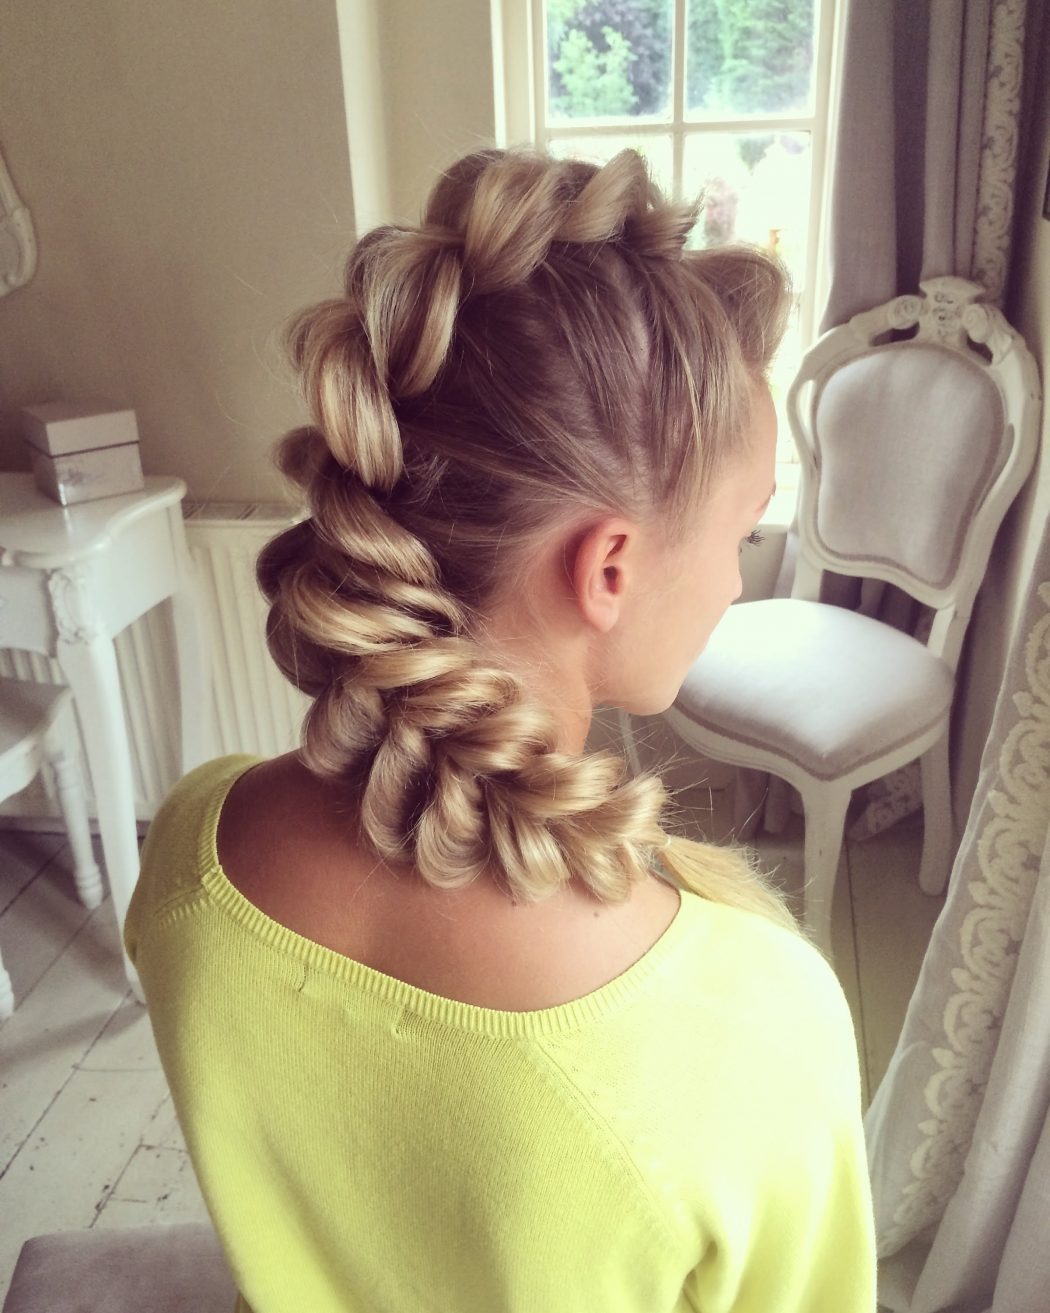 maxresdefault Most Trendy Classic Prom Hairstyles of Long Hairs